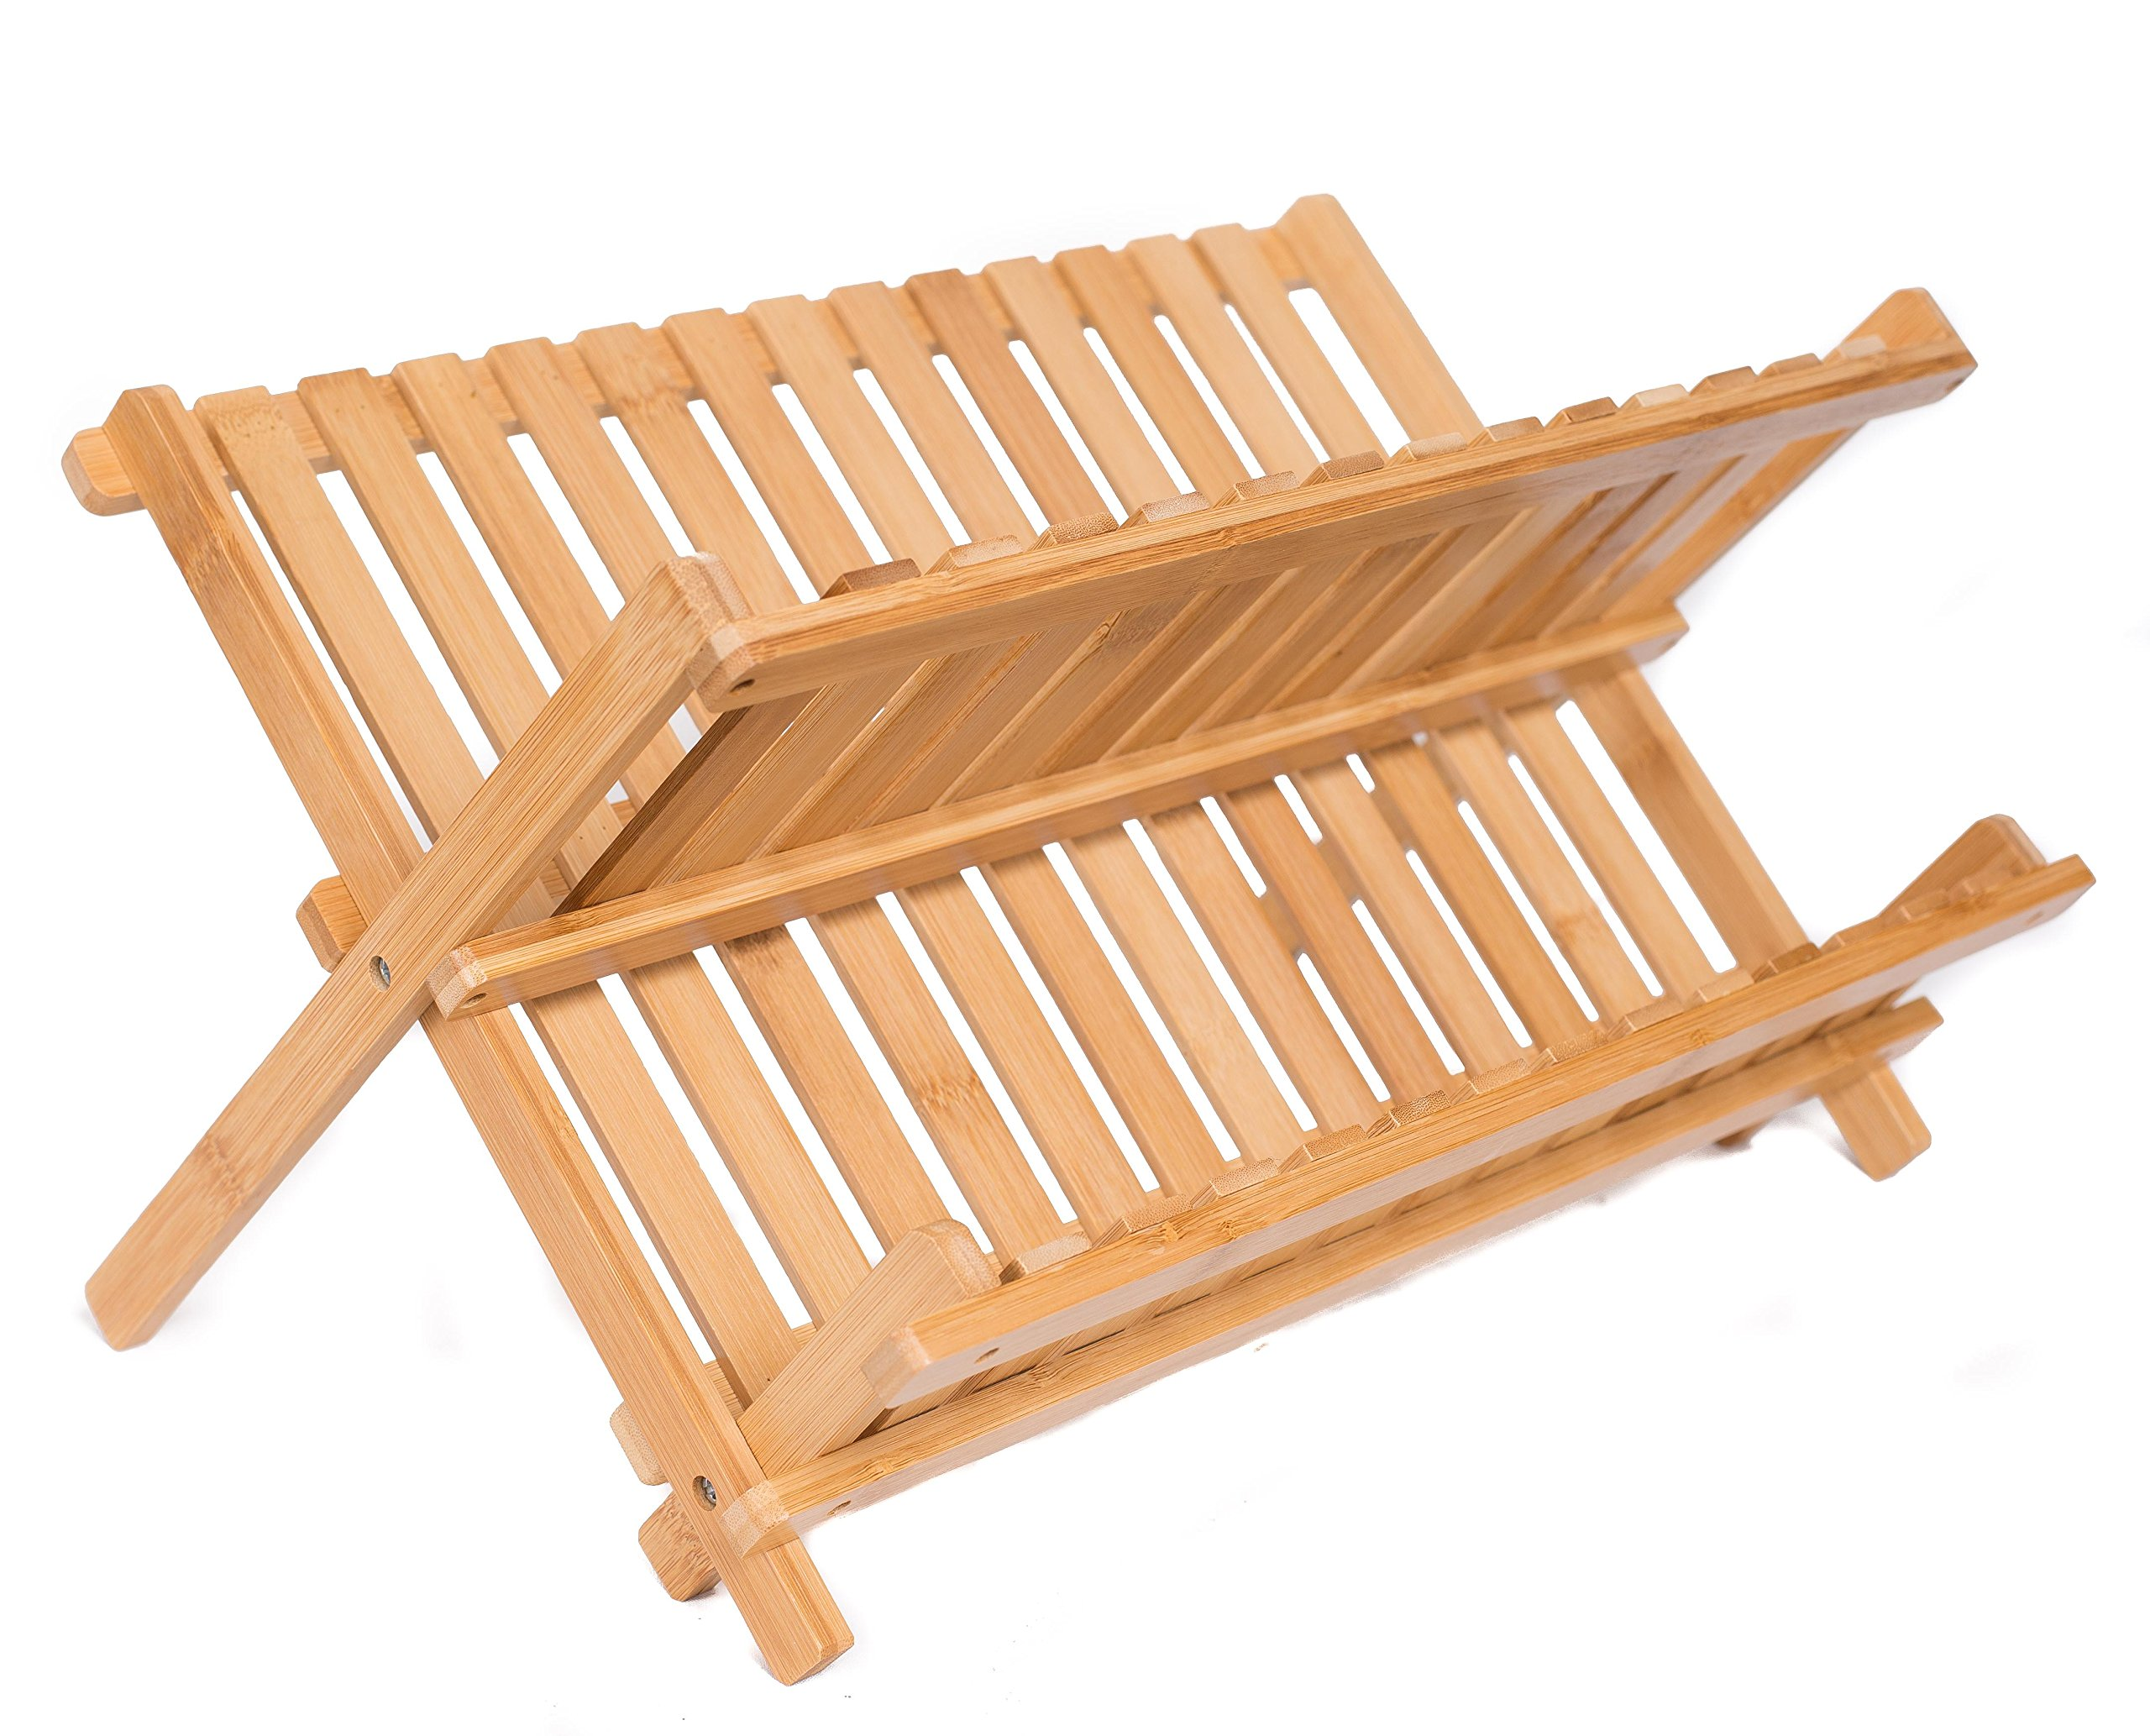 Collapsible Bamboo Drying Dish Rack | 2 Tier Level Folding Dish Rack for Counter Top | Quick Dry | Wooden Wood Dish Drainer | Kitchen Drying Utensils & Dishes | Plates Bowls | Easy Clean | Foldable